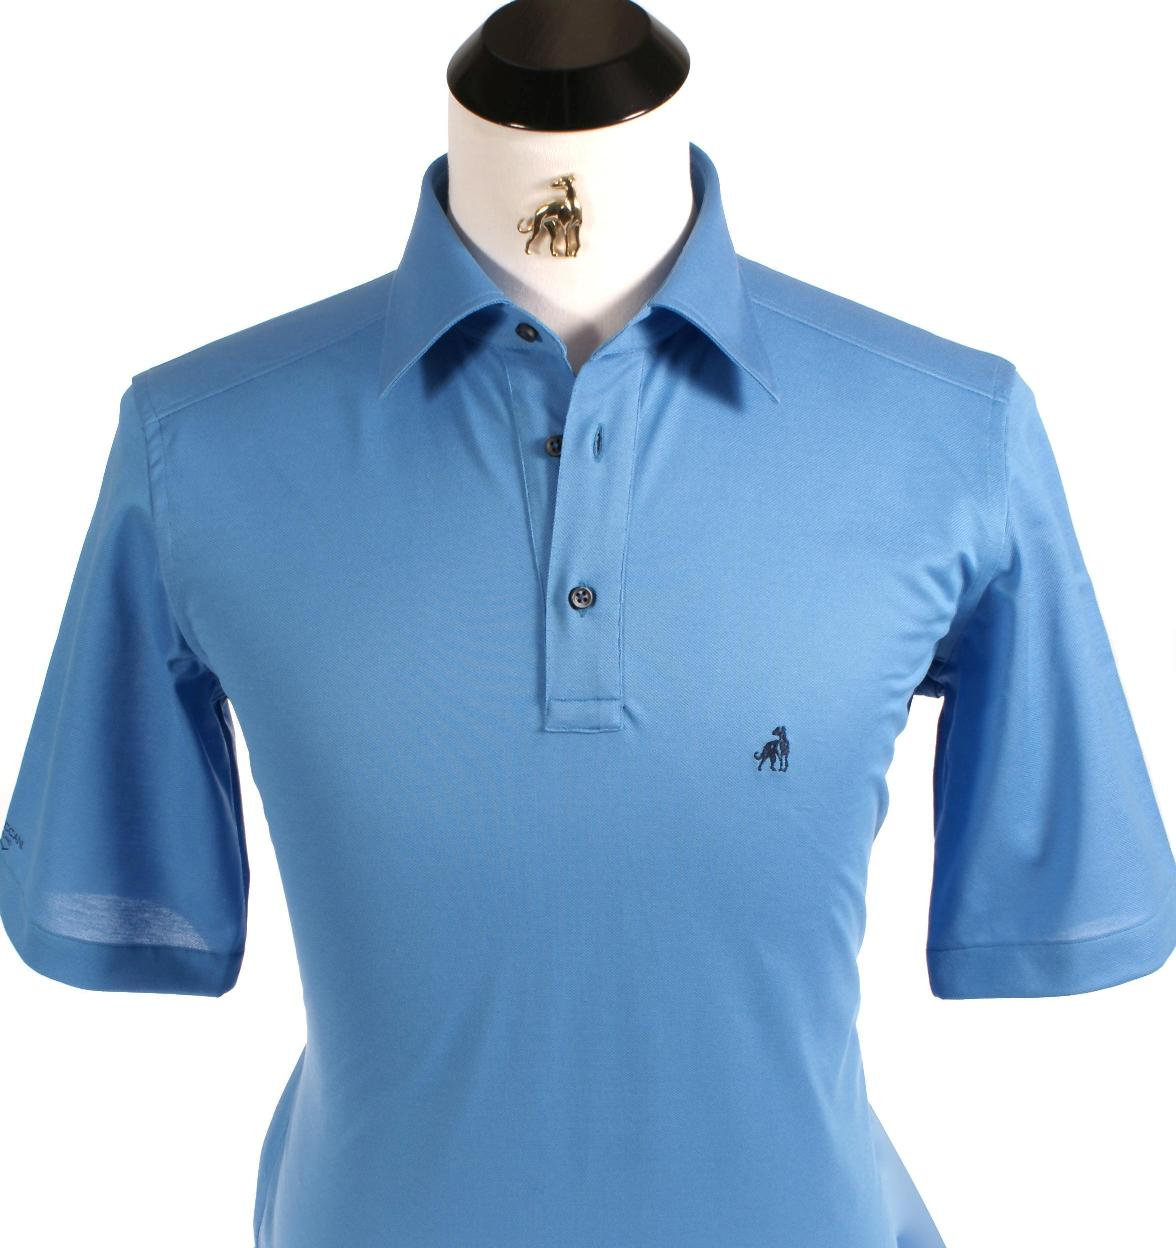 Luxury Custom Polo Shirt